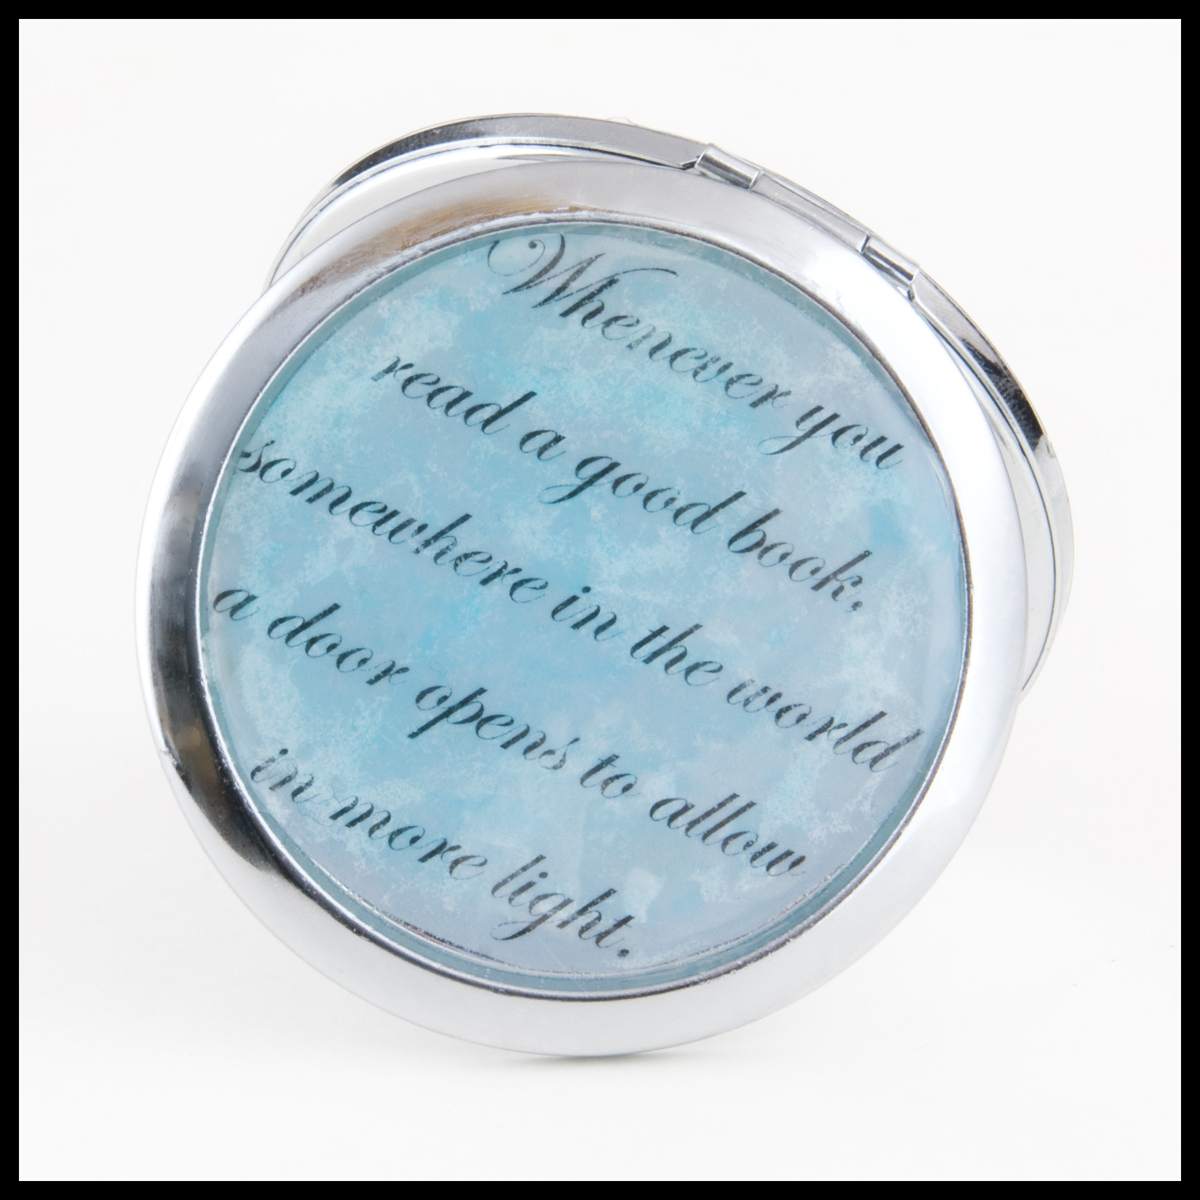 Book-themed mirror compact